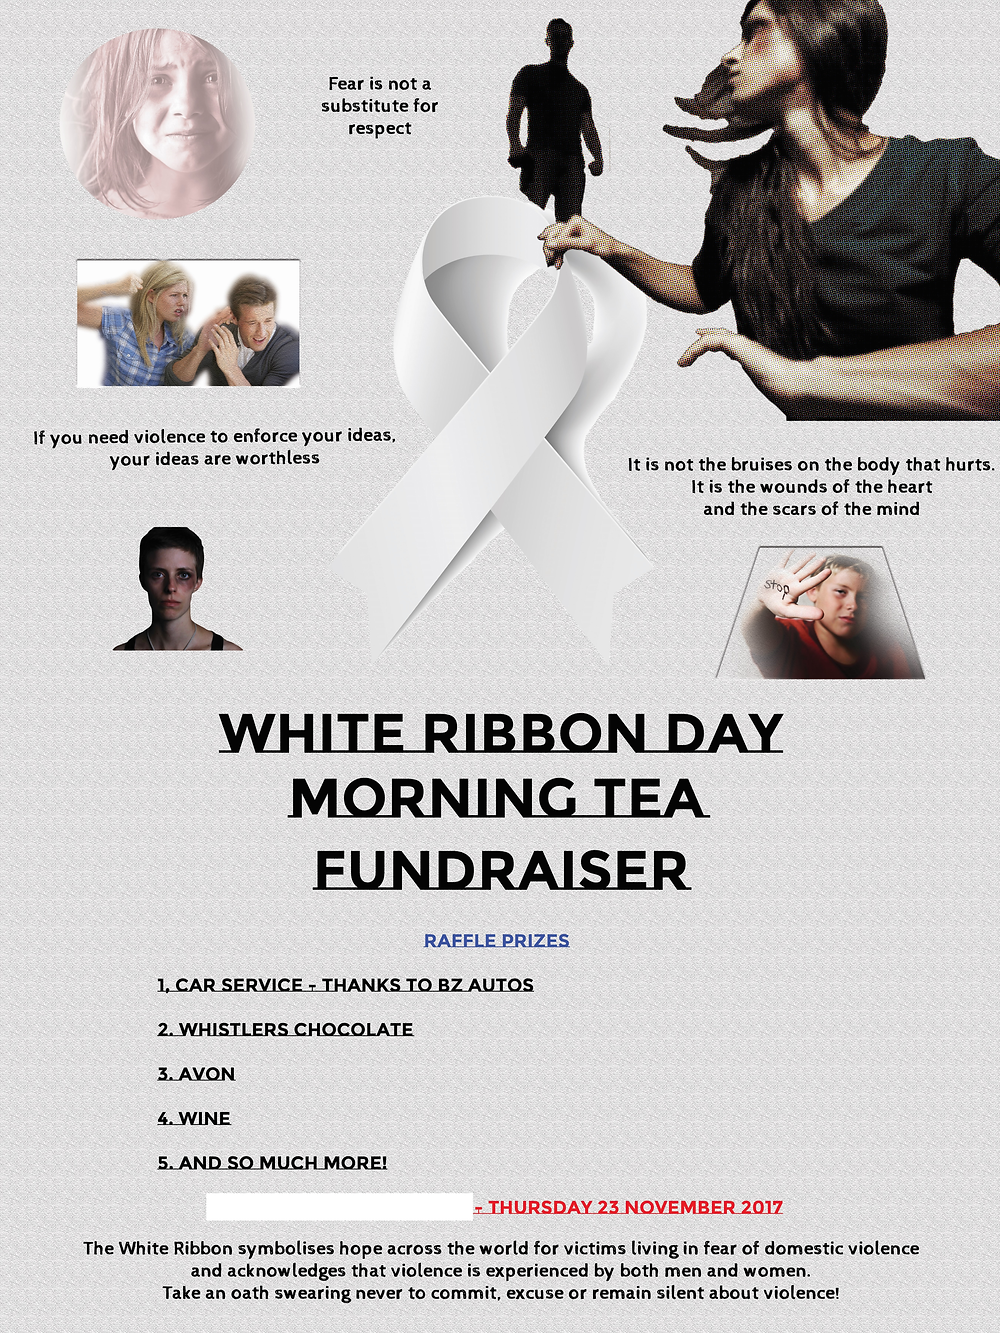 White Ribbon Day Australia Morning Tea Fundraiser poster - 2017 Delphine Jamet domestic violence against women and children gendered commitment